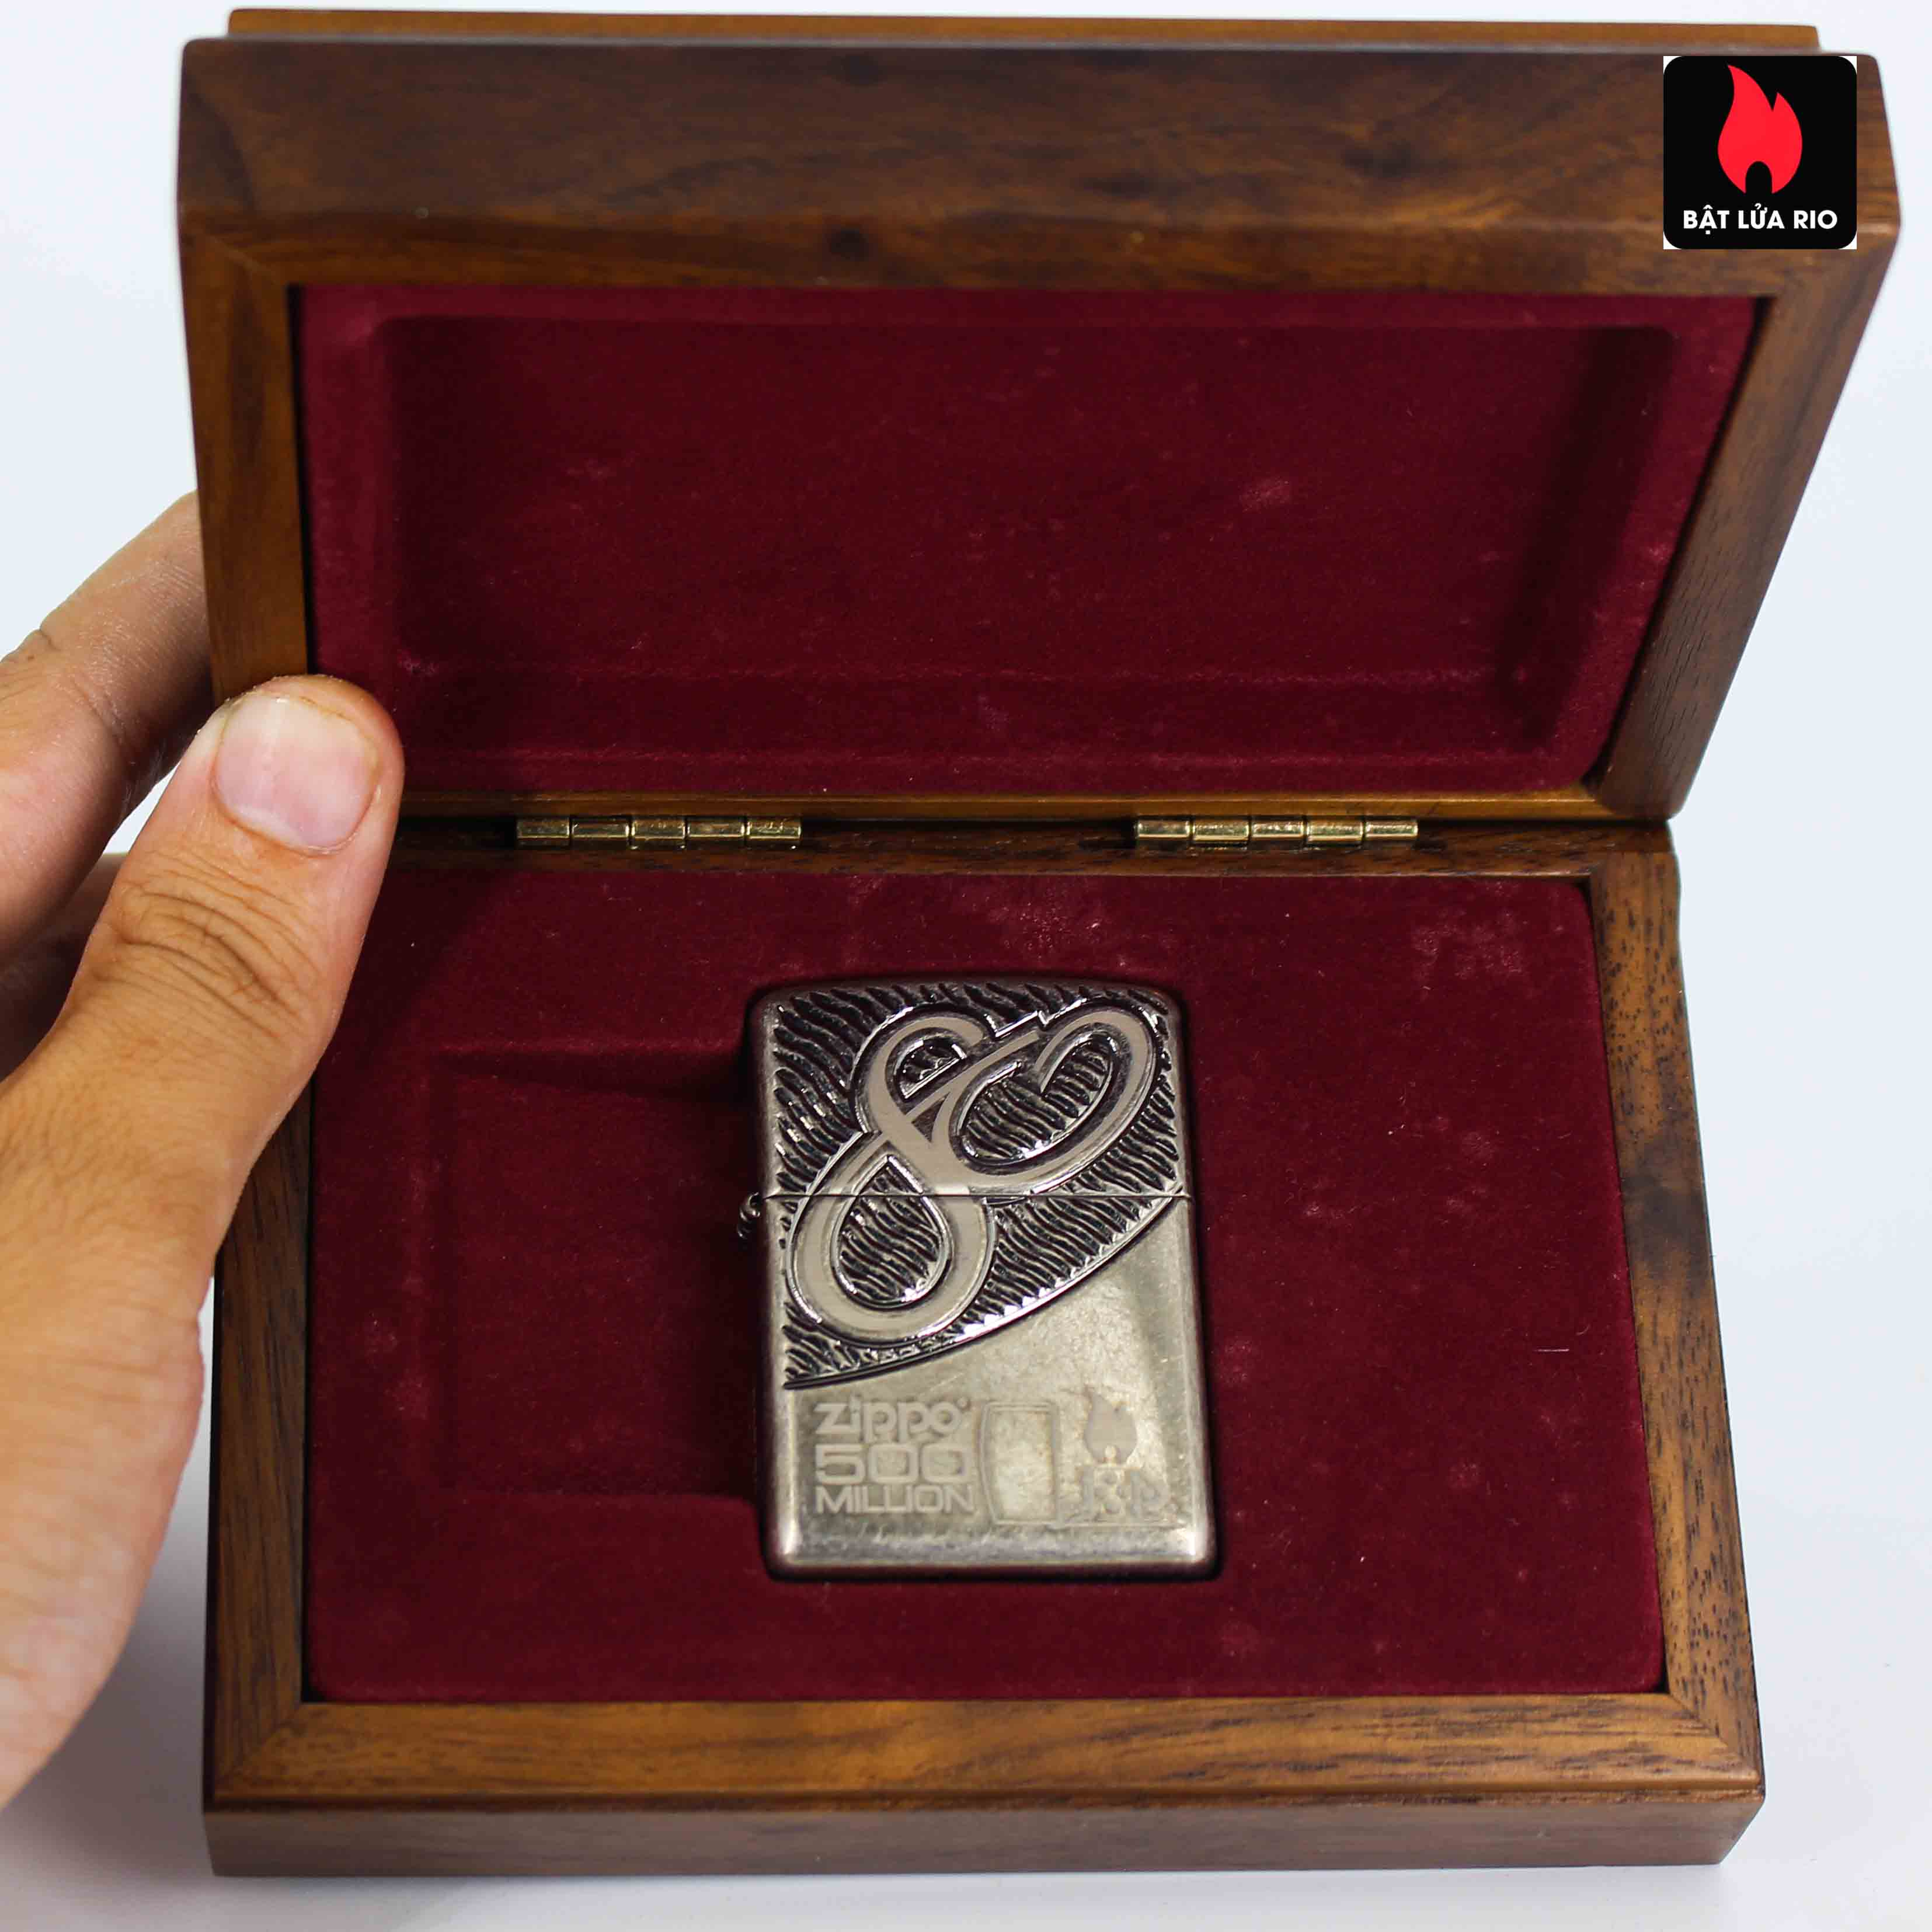 Zippo 2012 - 80th Anniversary and 500 Million - Limited 405/500 2